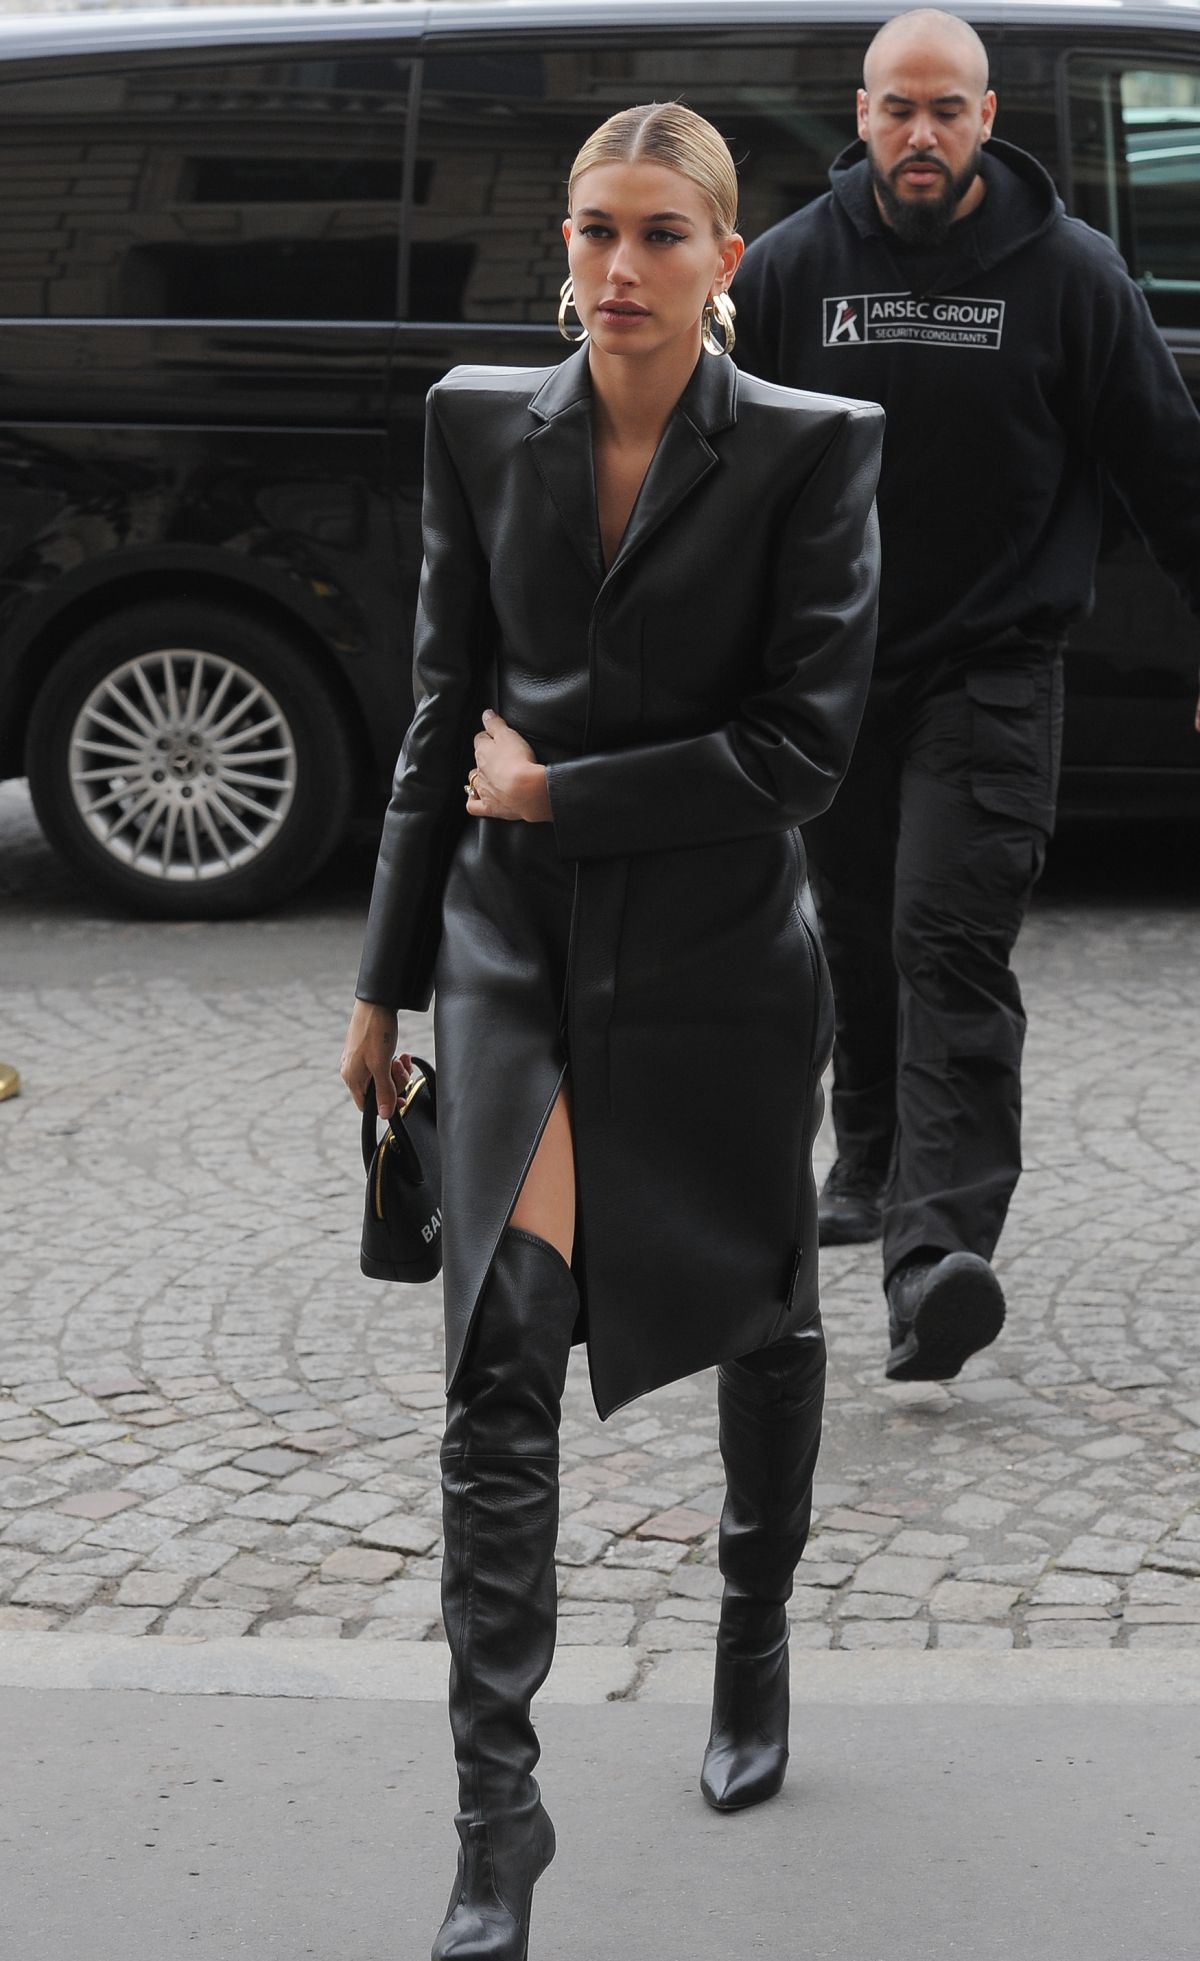 hailey-bieber-out-and-about-in-paris-03-03-2019-6.jpg